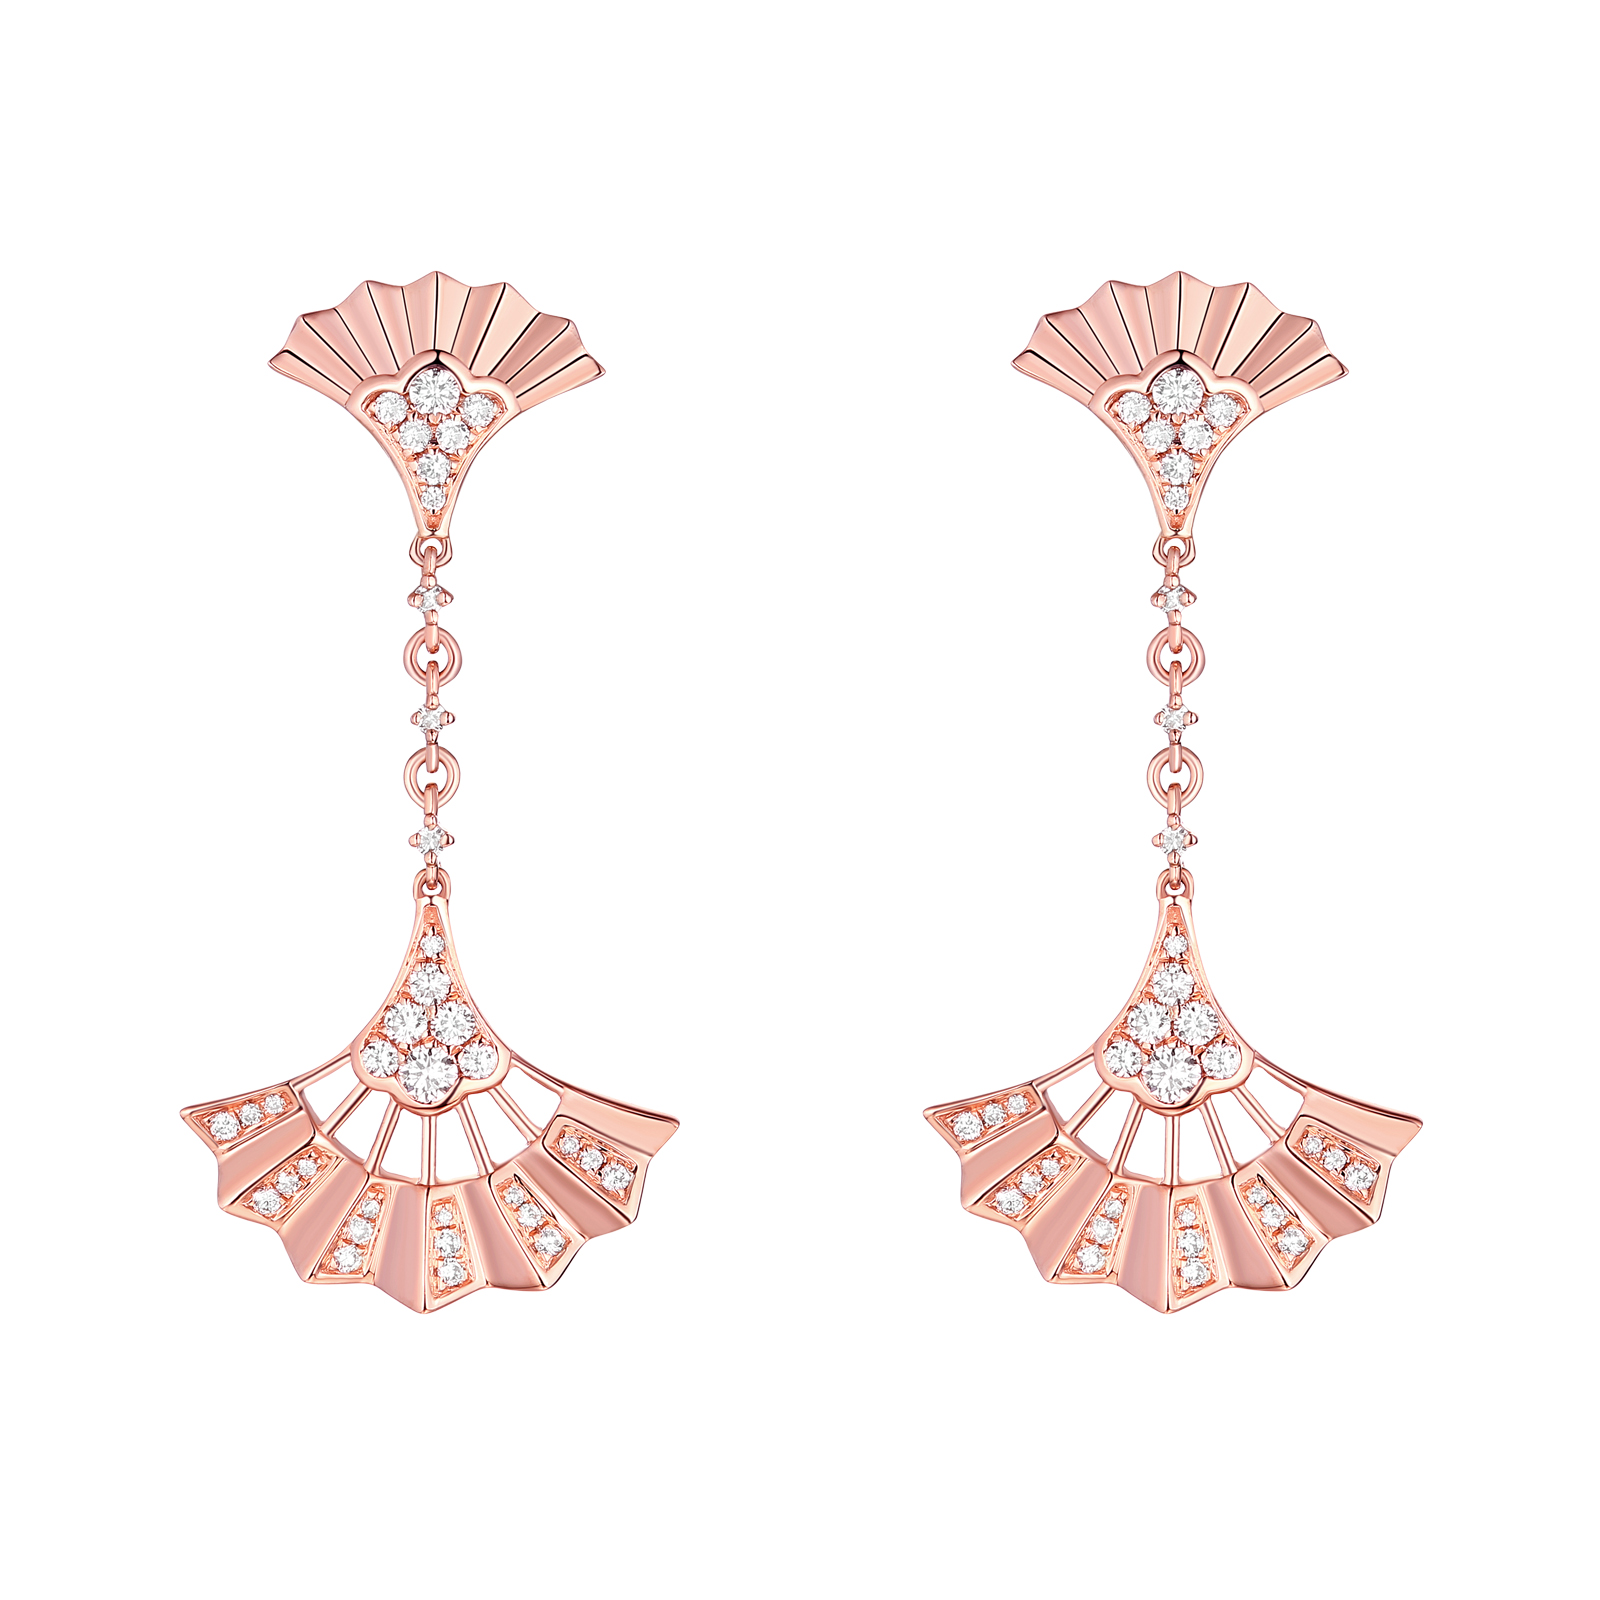 E29923WHT- 14K Rose Gold Diamond Earrings, 0.37 TCW